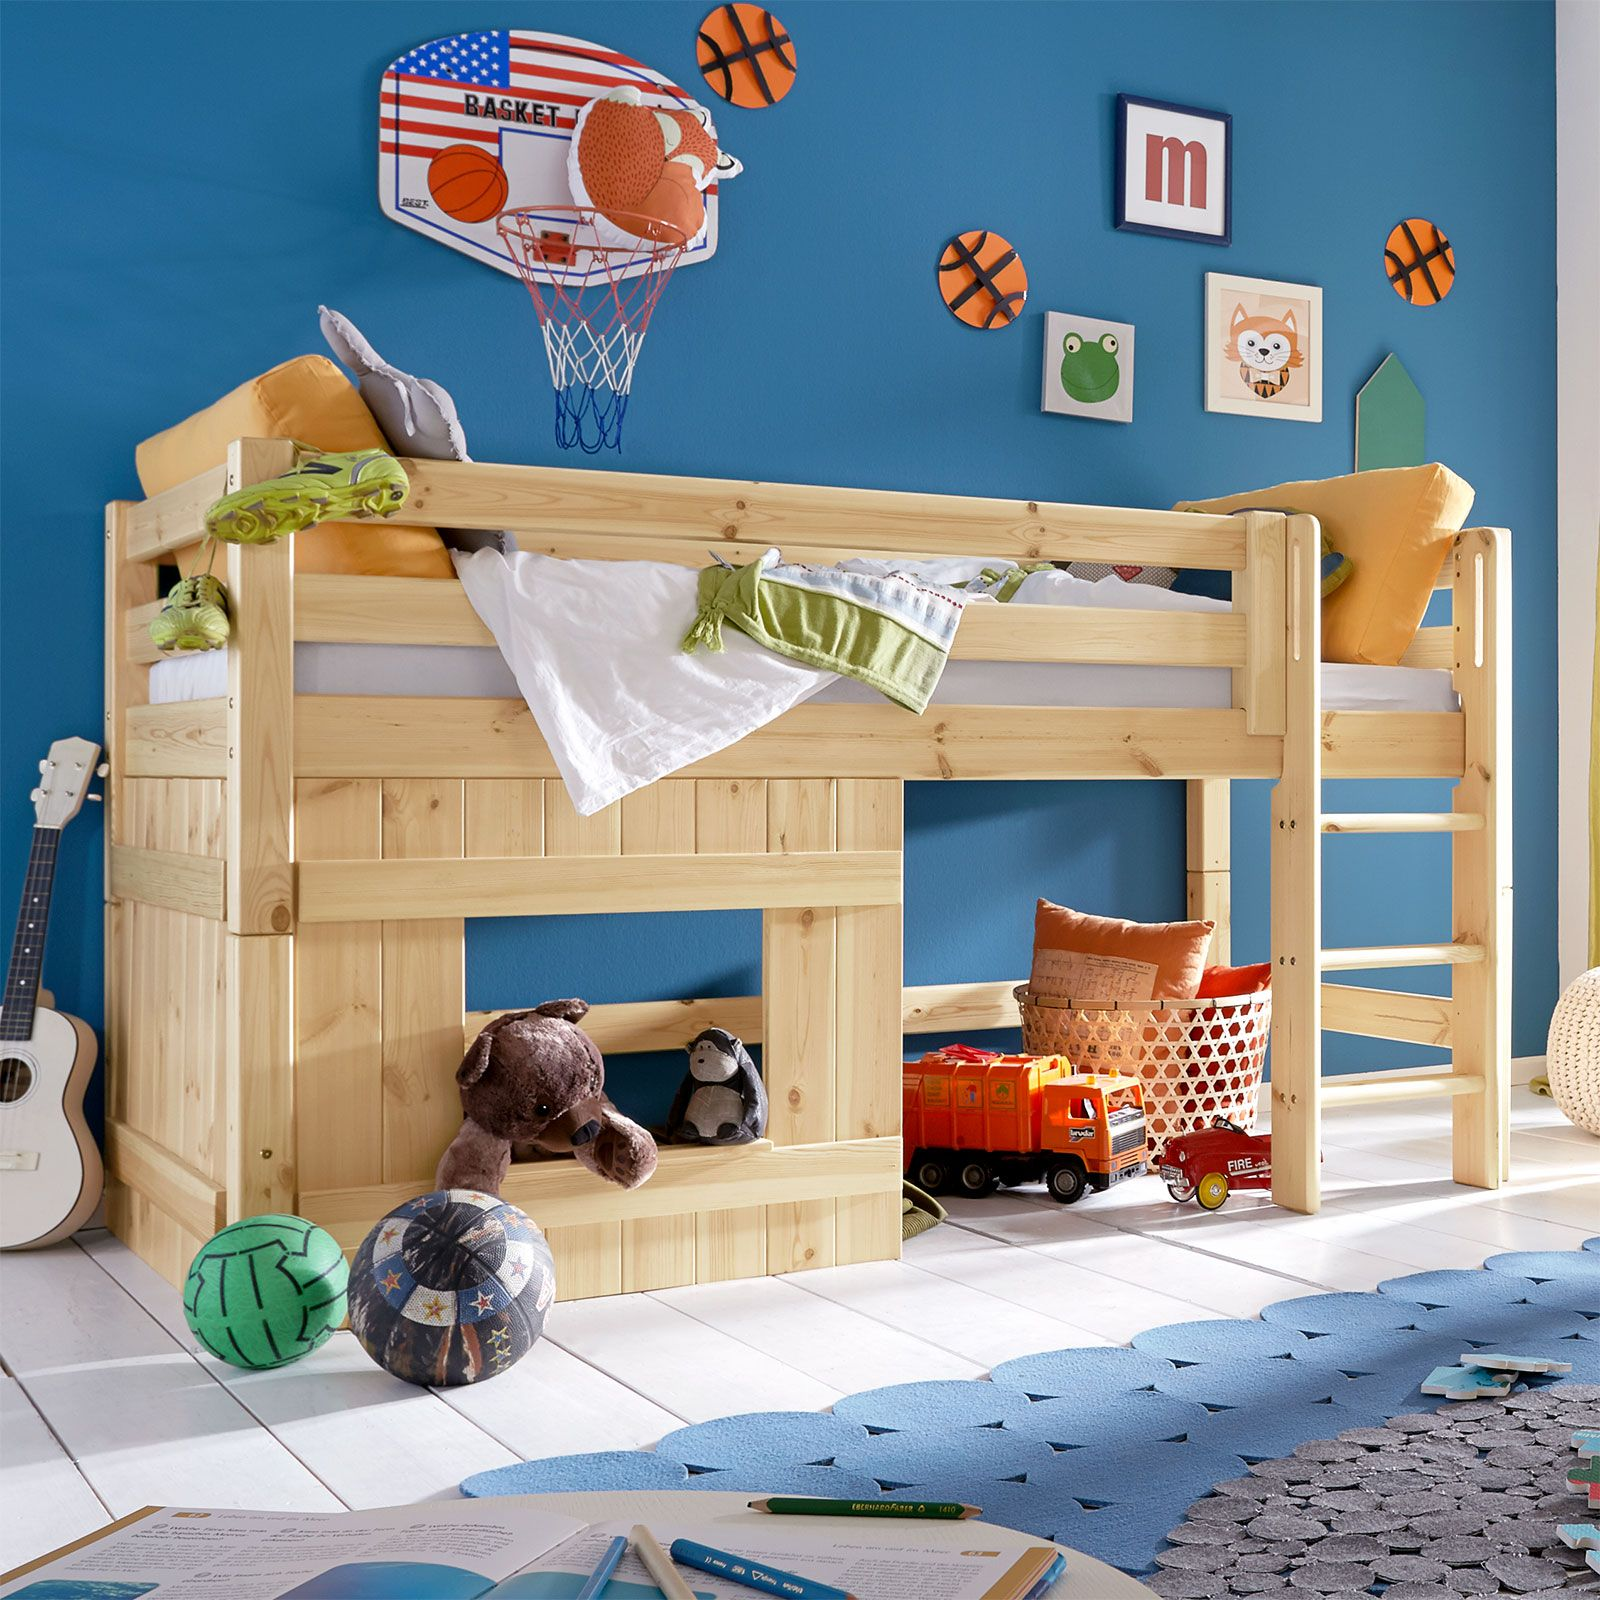 h tten hochbett kids paradise f r jungen inklusive roll lattenrost kinderzimmer. Black Bedroom Furniture Sets. Home Design Ideas